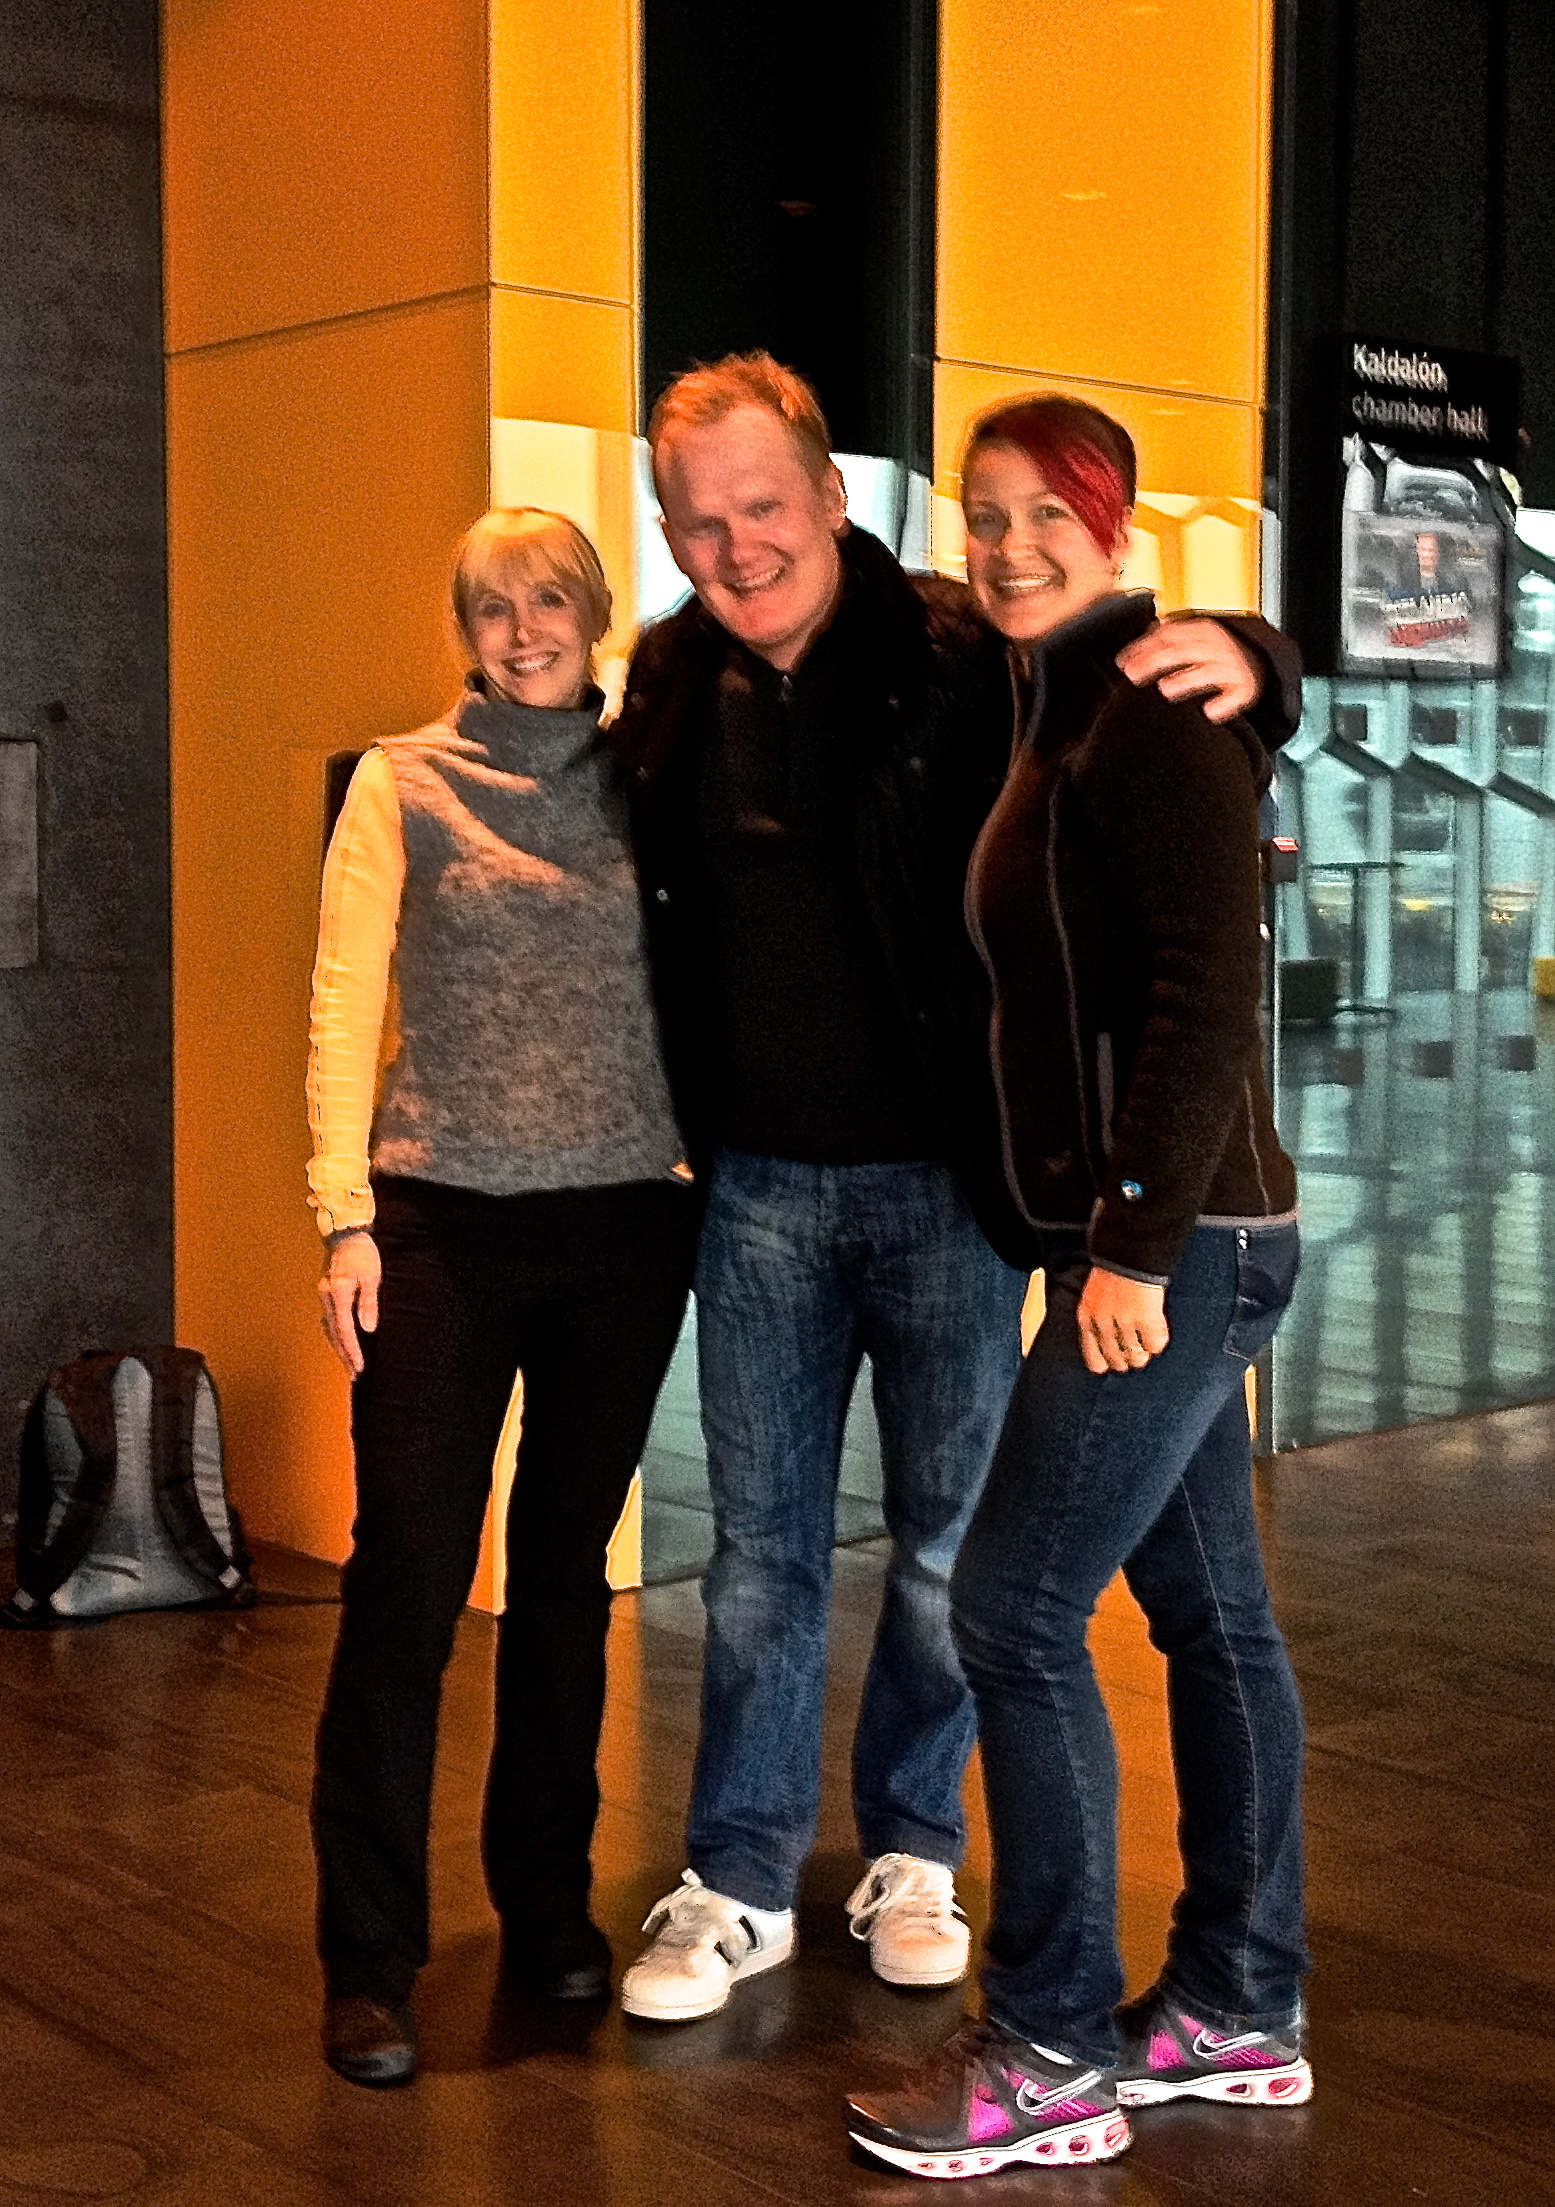 Bjarni Haukur Thorsson at the Harpa Theater with two fans